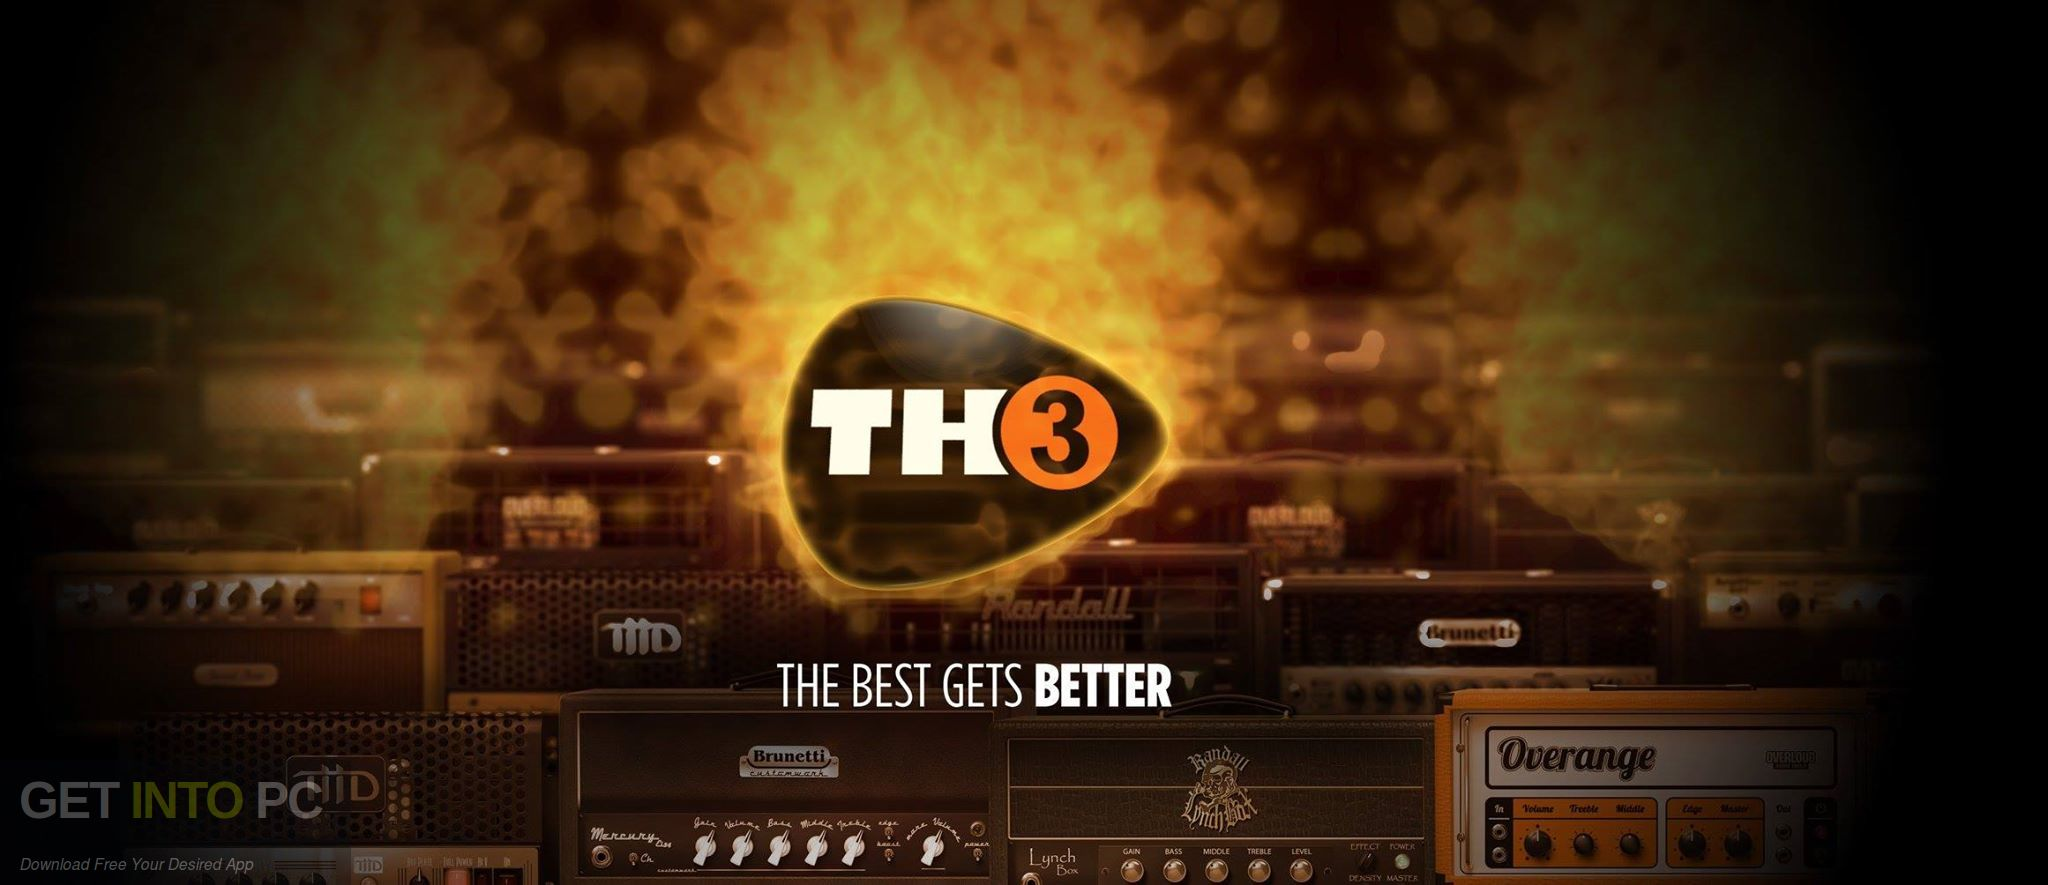 Overloud TH3 VST Free Download-GetintoPC.com